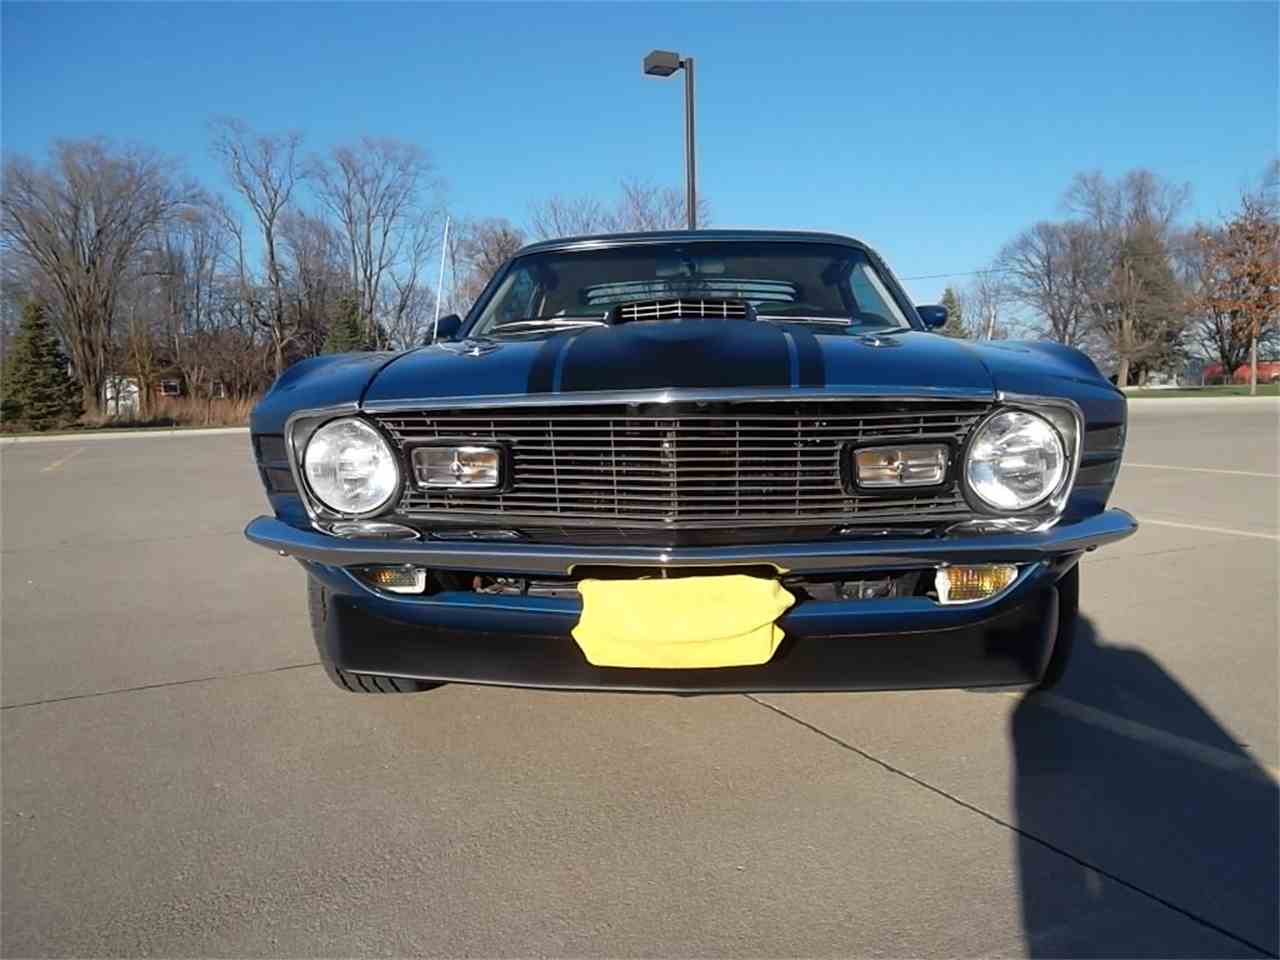 Large Picture of Classic 1970 Ford Mustang Mach 1  located in Iowa Offered by a Private Seller - KCJ1